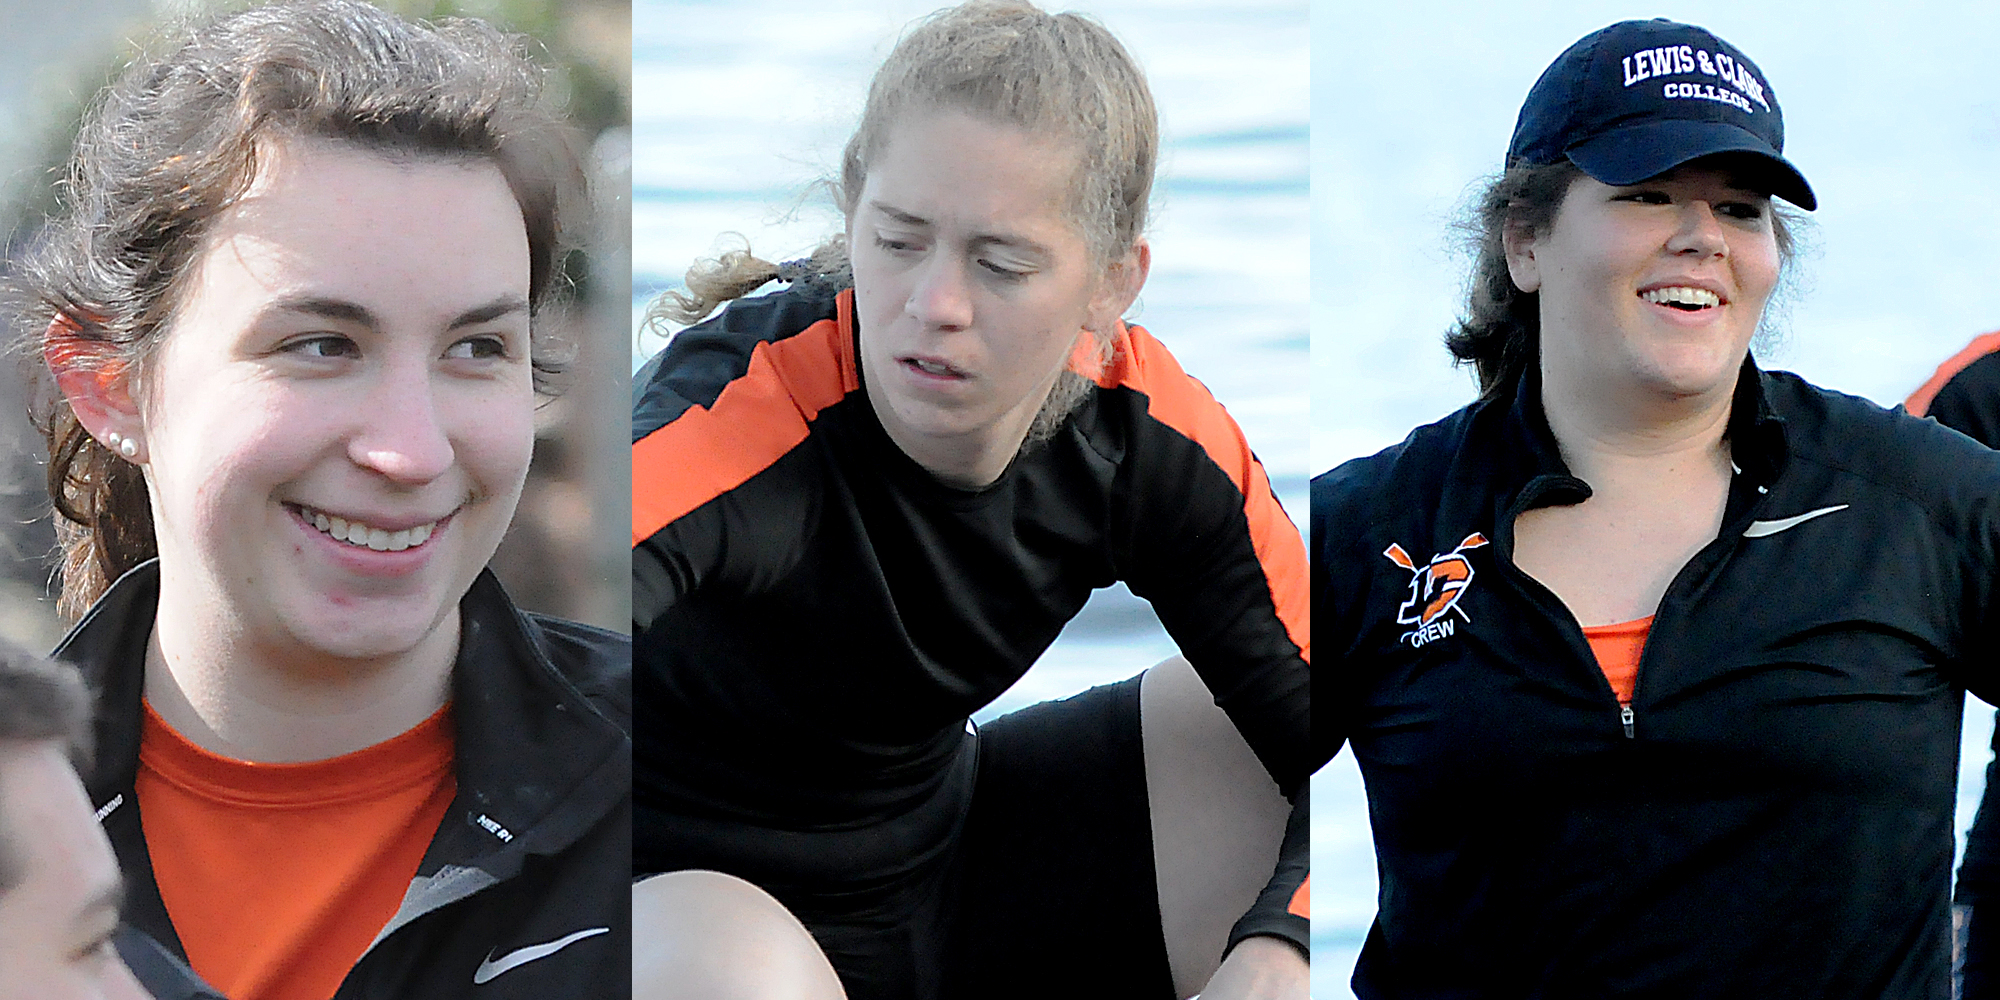 Graham, Garber and Stroud recognized as CRCA National Scholar-Athletes